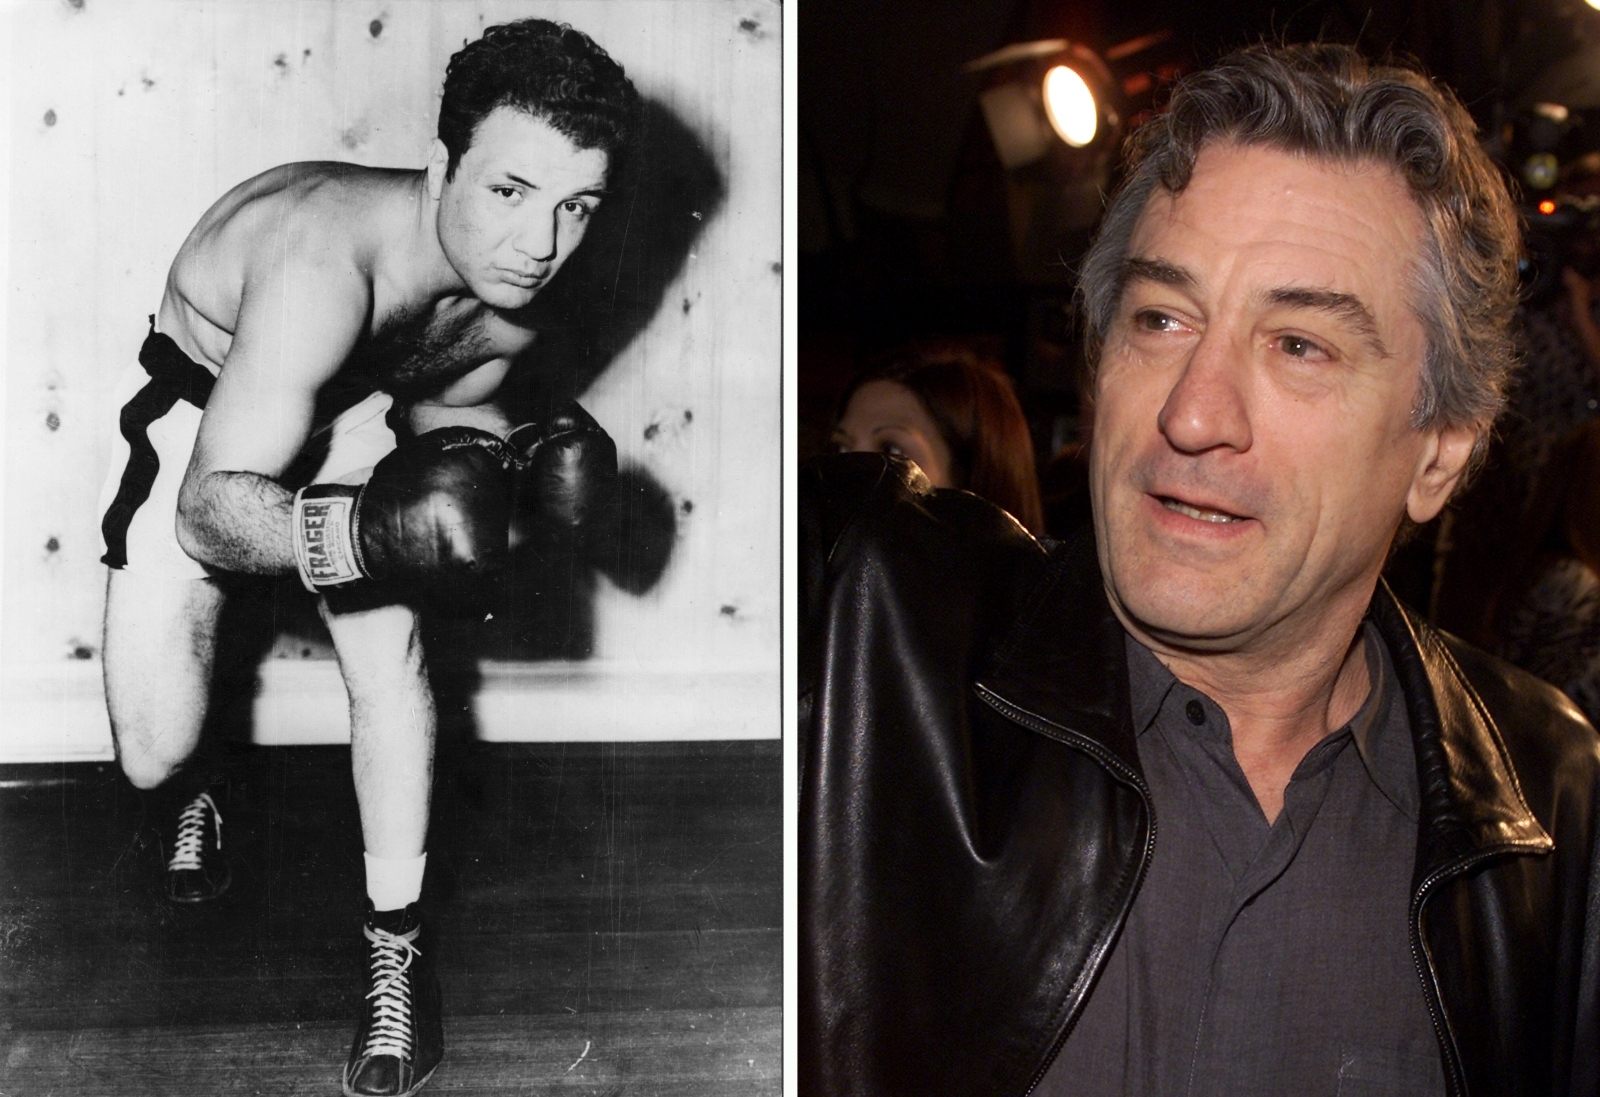 Jake LaMotta, boxing champion immortalised in Raging Bull - obituary